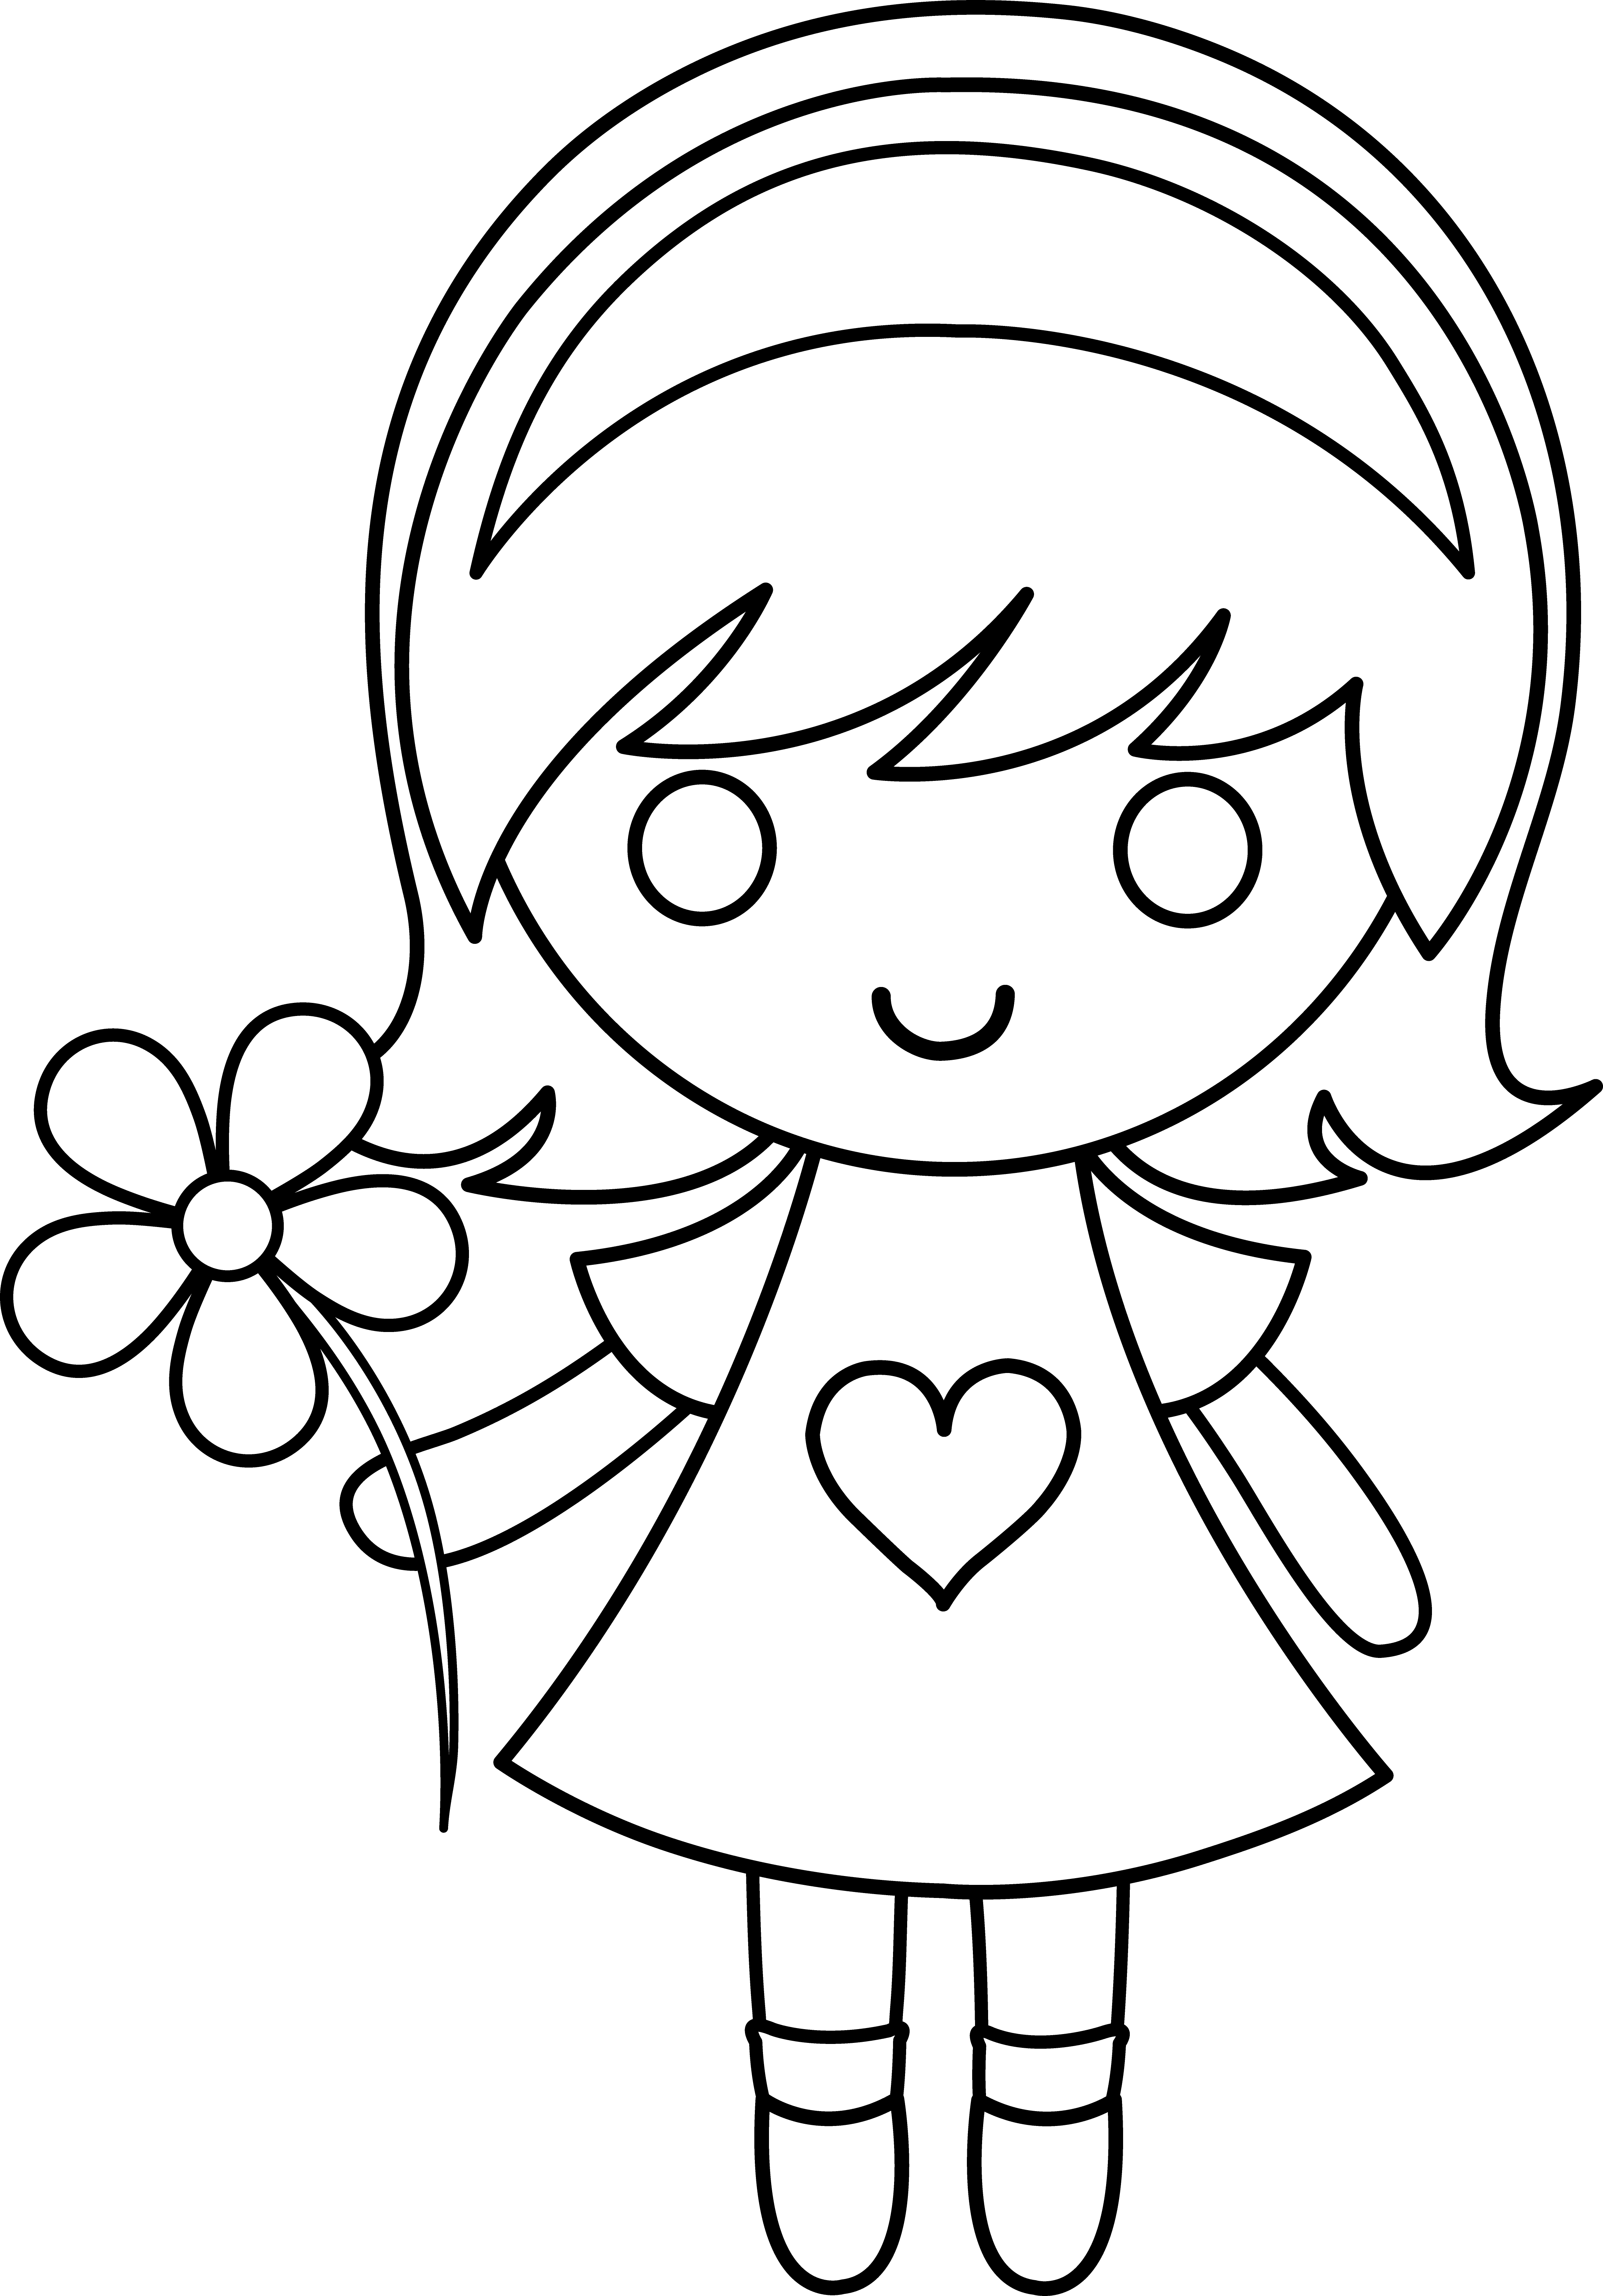 royalty free stock Girl With Flower Drawing at GetDrawings